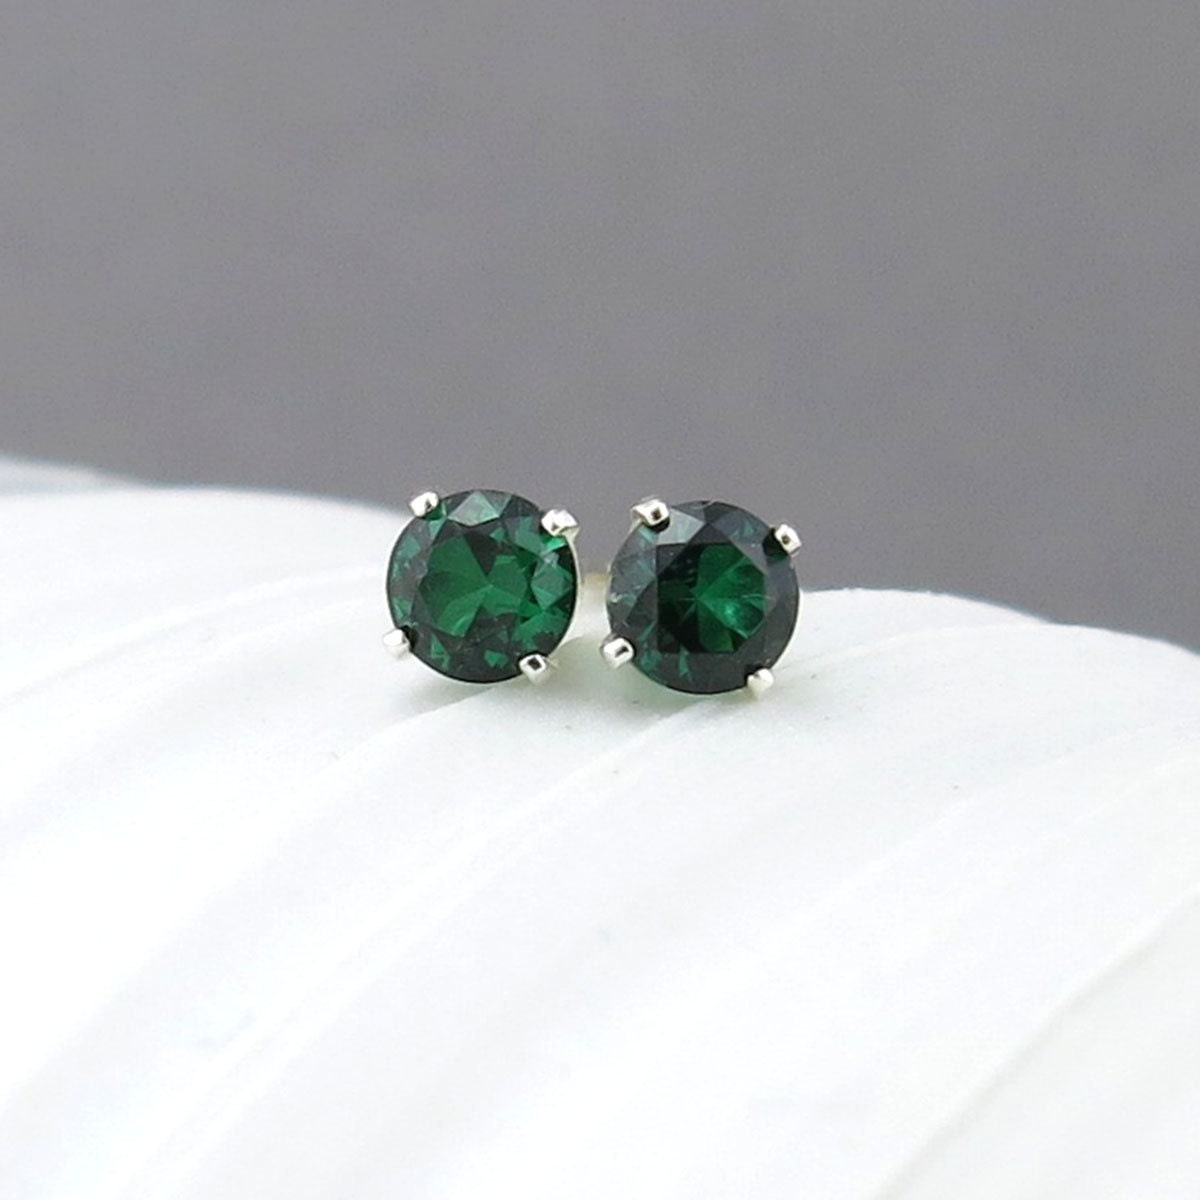 have earrings must clip omega elegance timeless green ciro black catherine emerald the a makes tie item jewelry srgb product stud collection royal